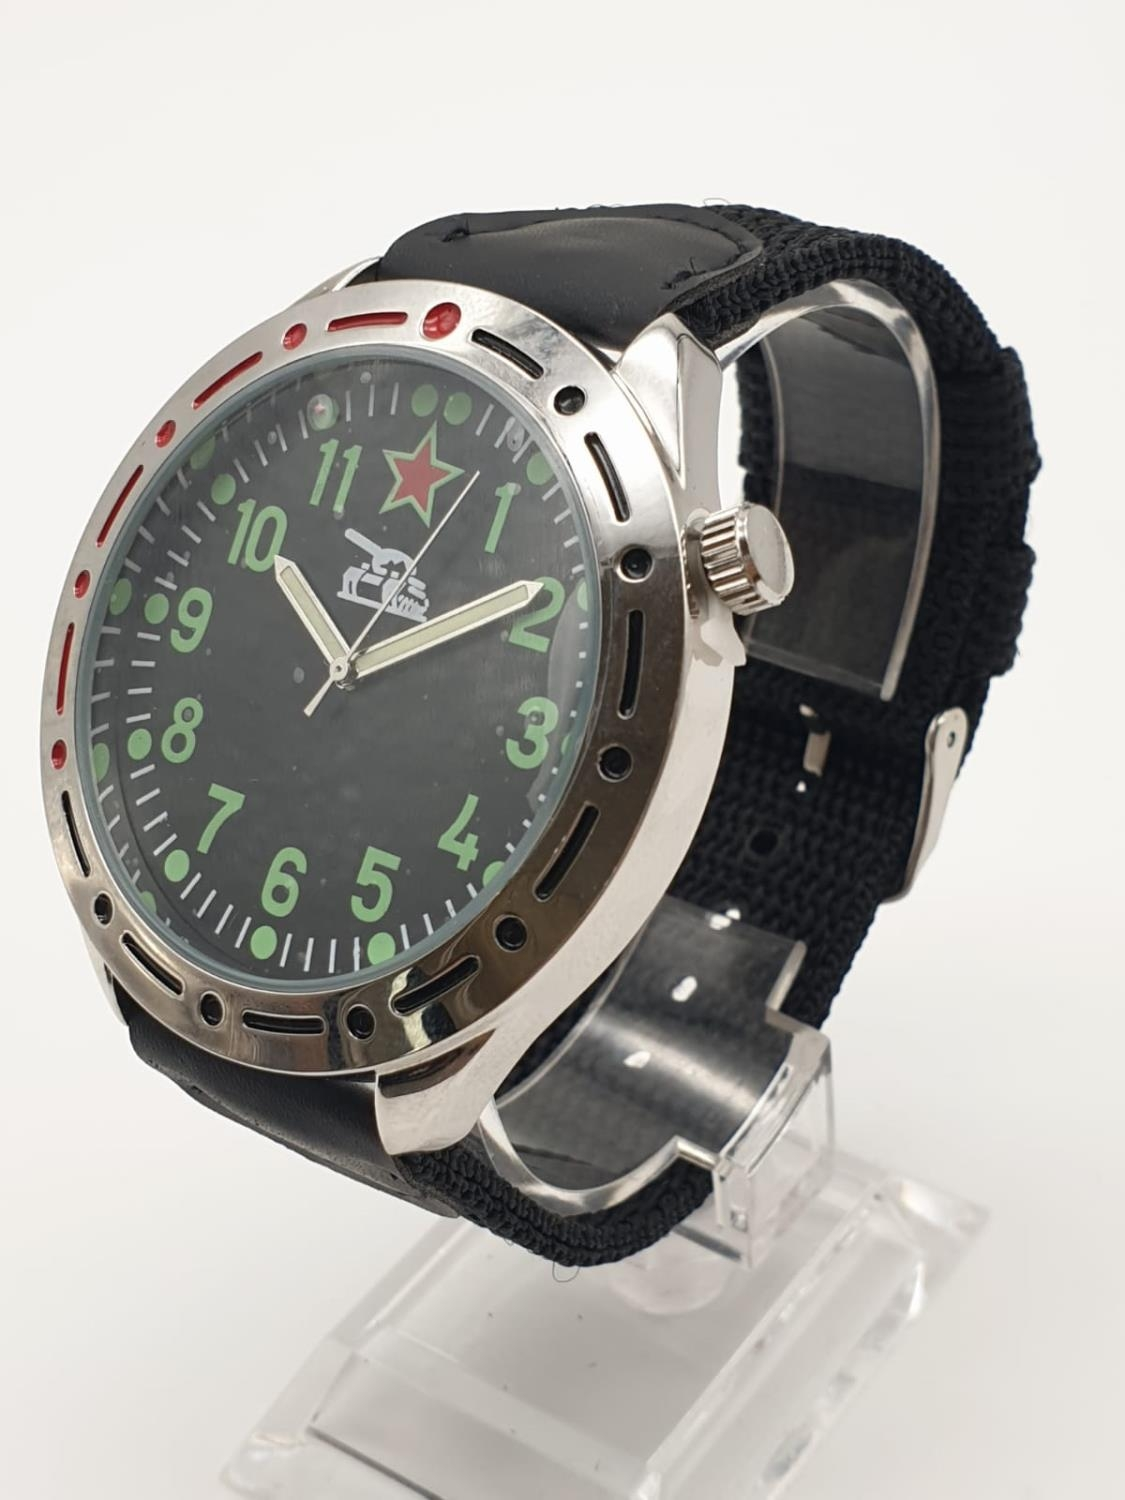 1980'S RUSSIAN TANK WATCH , BOXED AS NEW - Image 2 of 6